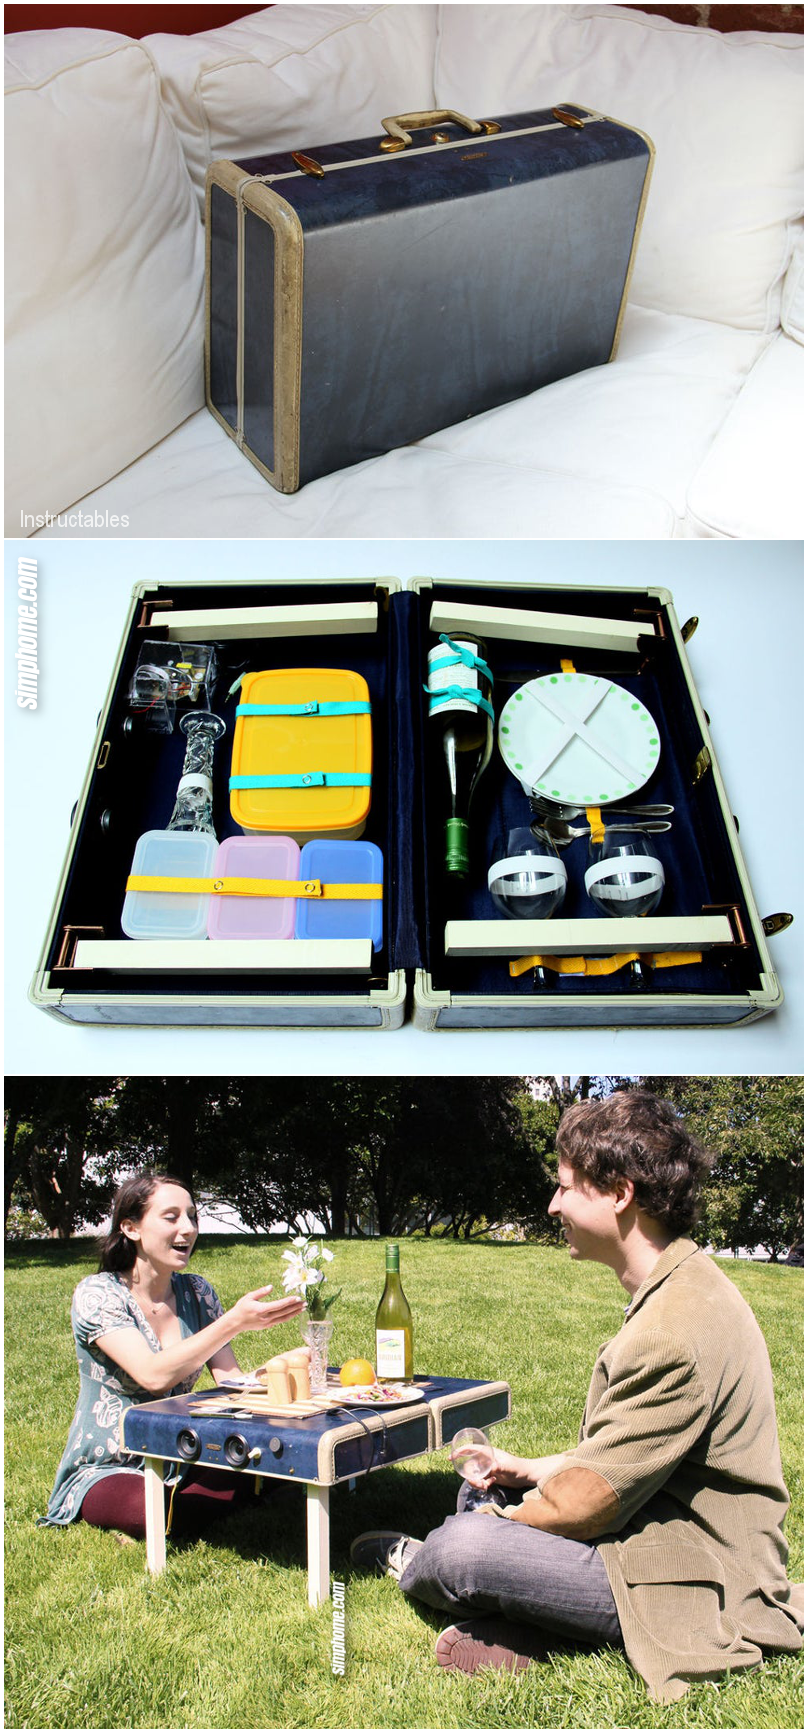 9.A Romantic Picnic With Portable luggage By Simphome.com